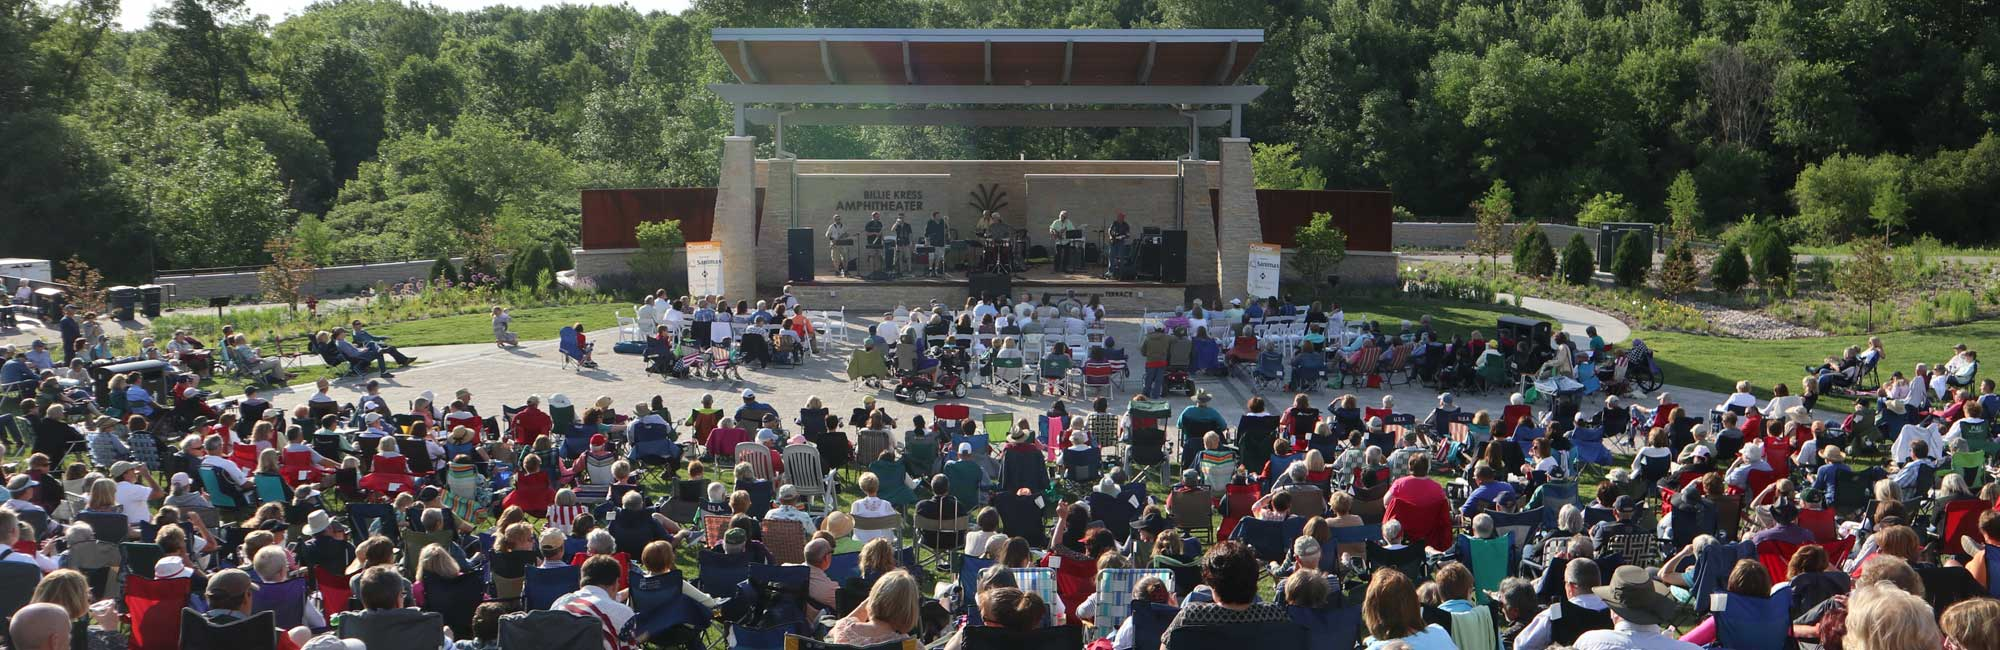 Les Stumpf Ford Grand Concert Series Lineup Announced